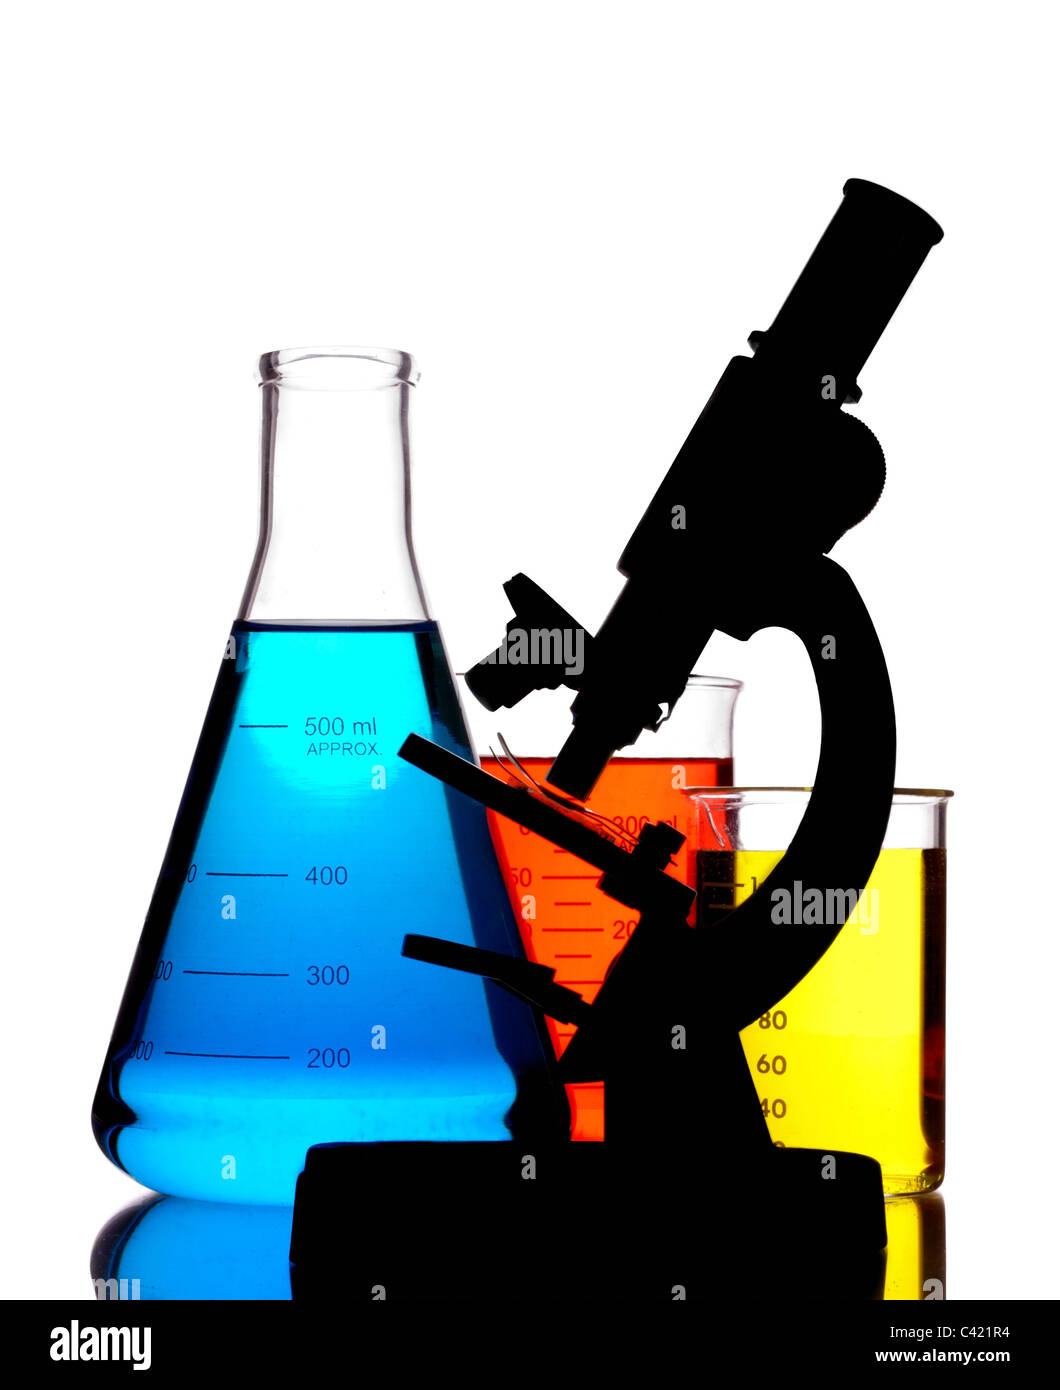 microscope and laboratory glassware - Stock Image